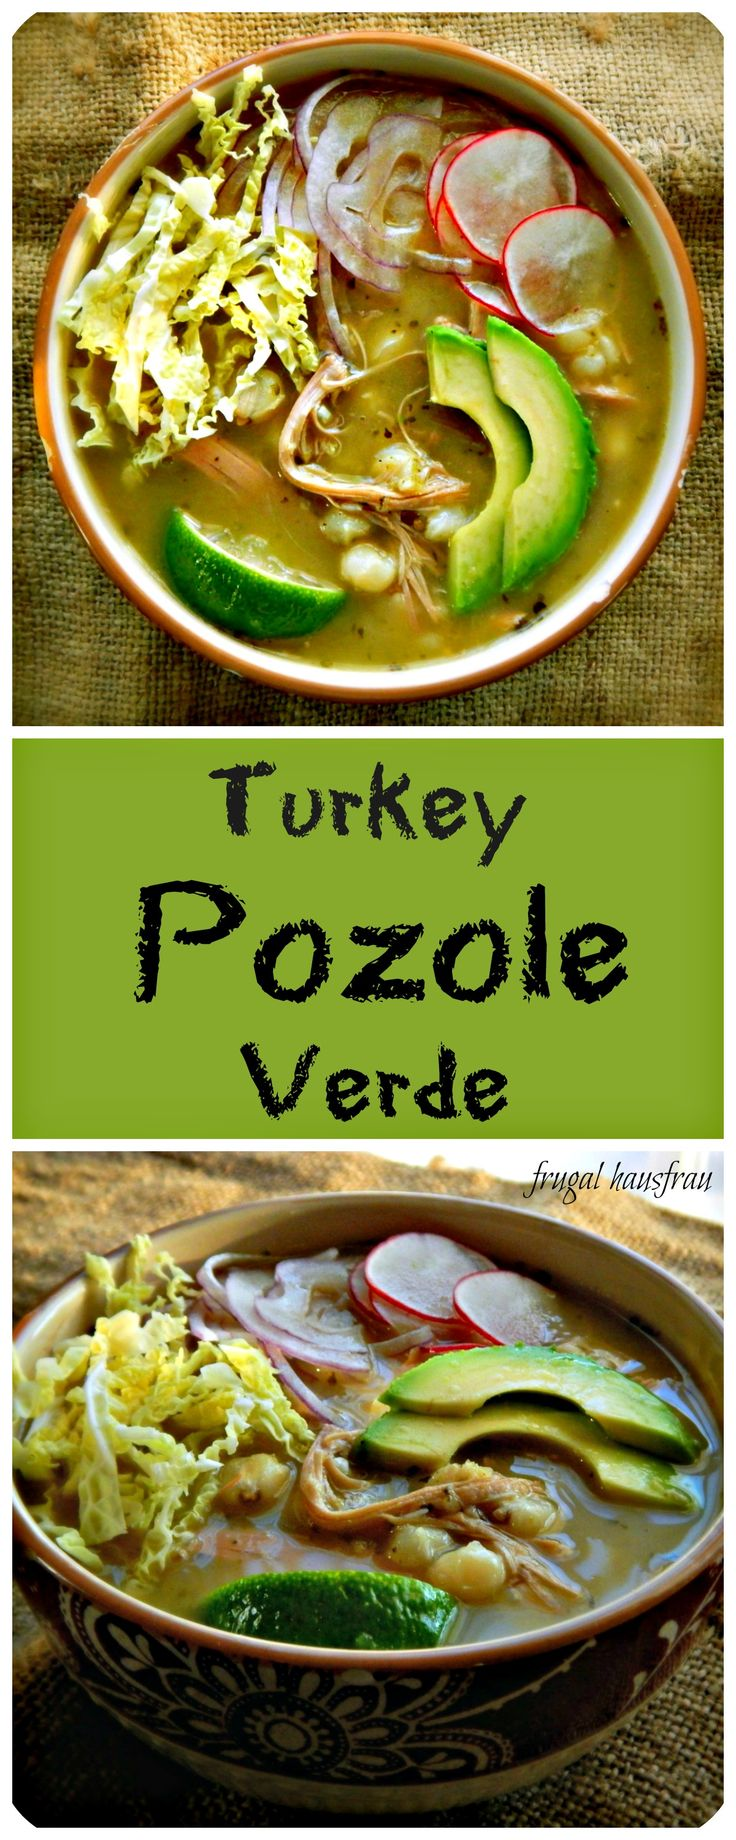 THE BEST POZOLE!! Make it with your Thanksgivng Turkey Carcass - or use a good Chicken Broth!